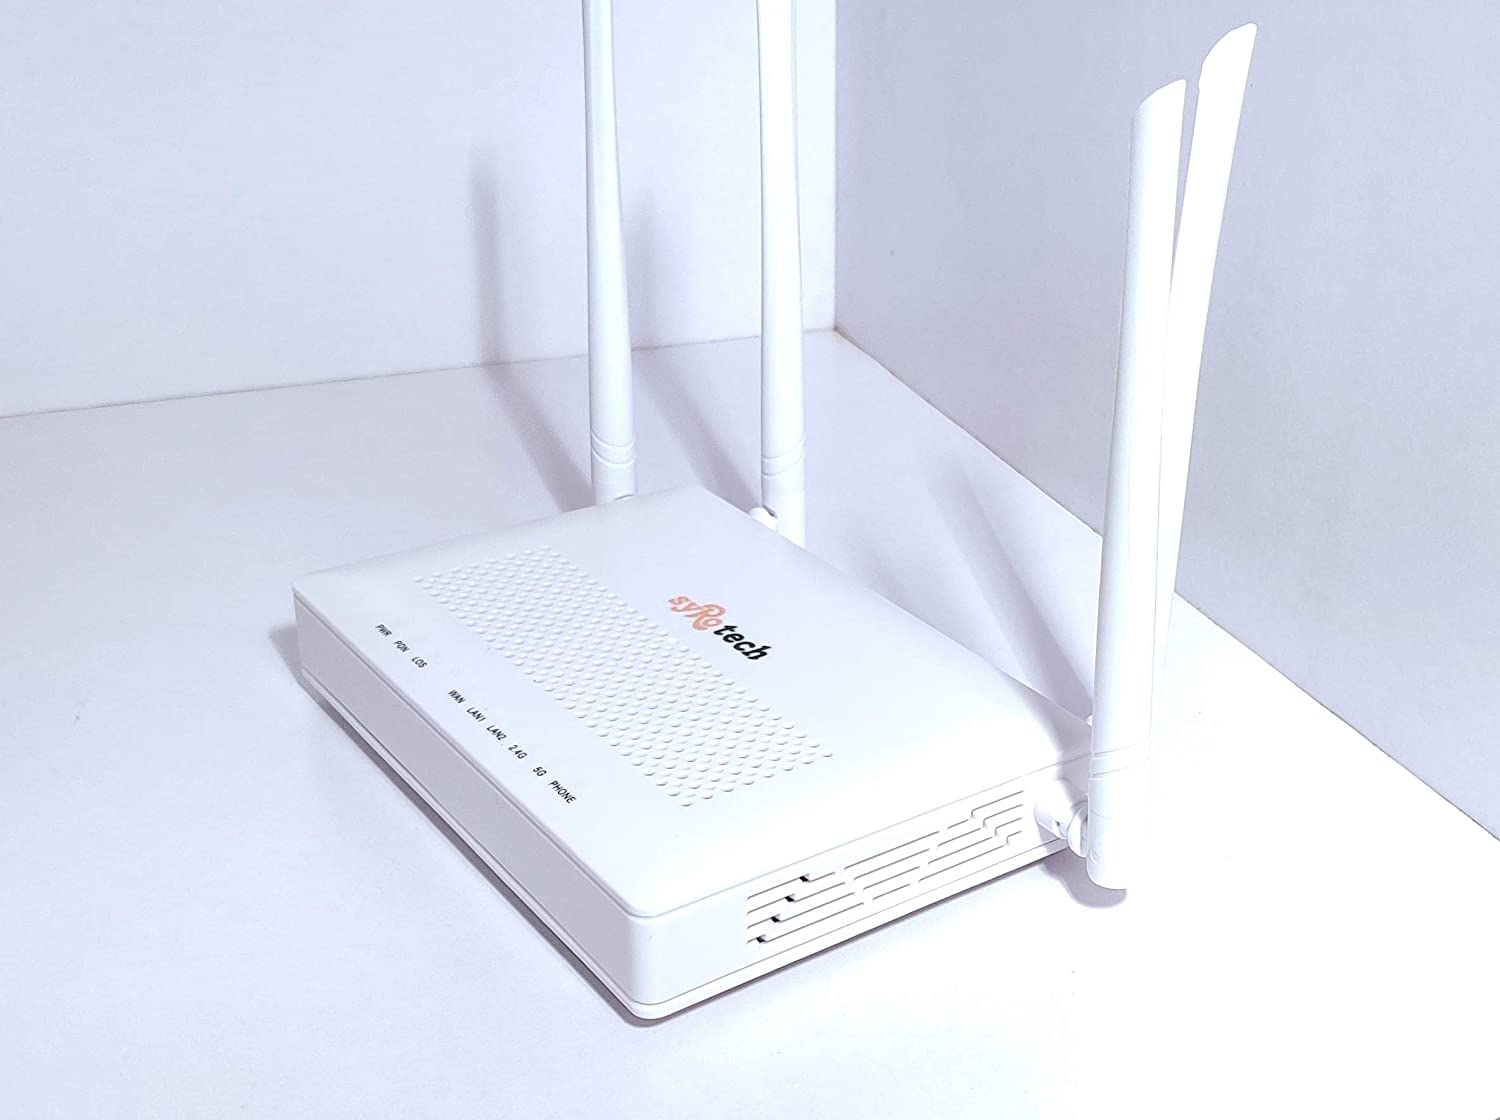 Syrotech SY-GPON-1110 WDAONT Wireless Router